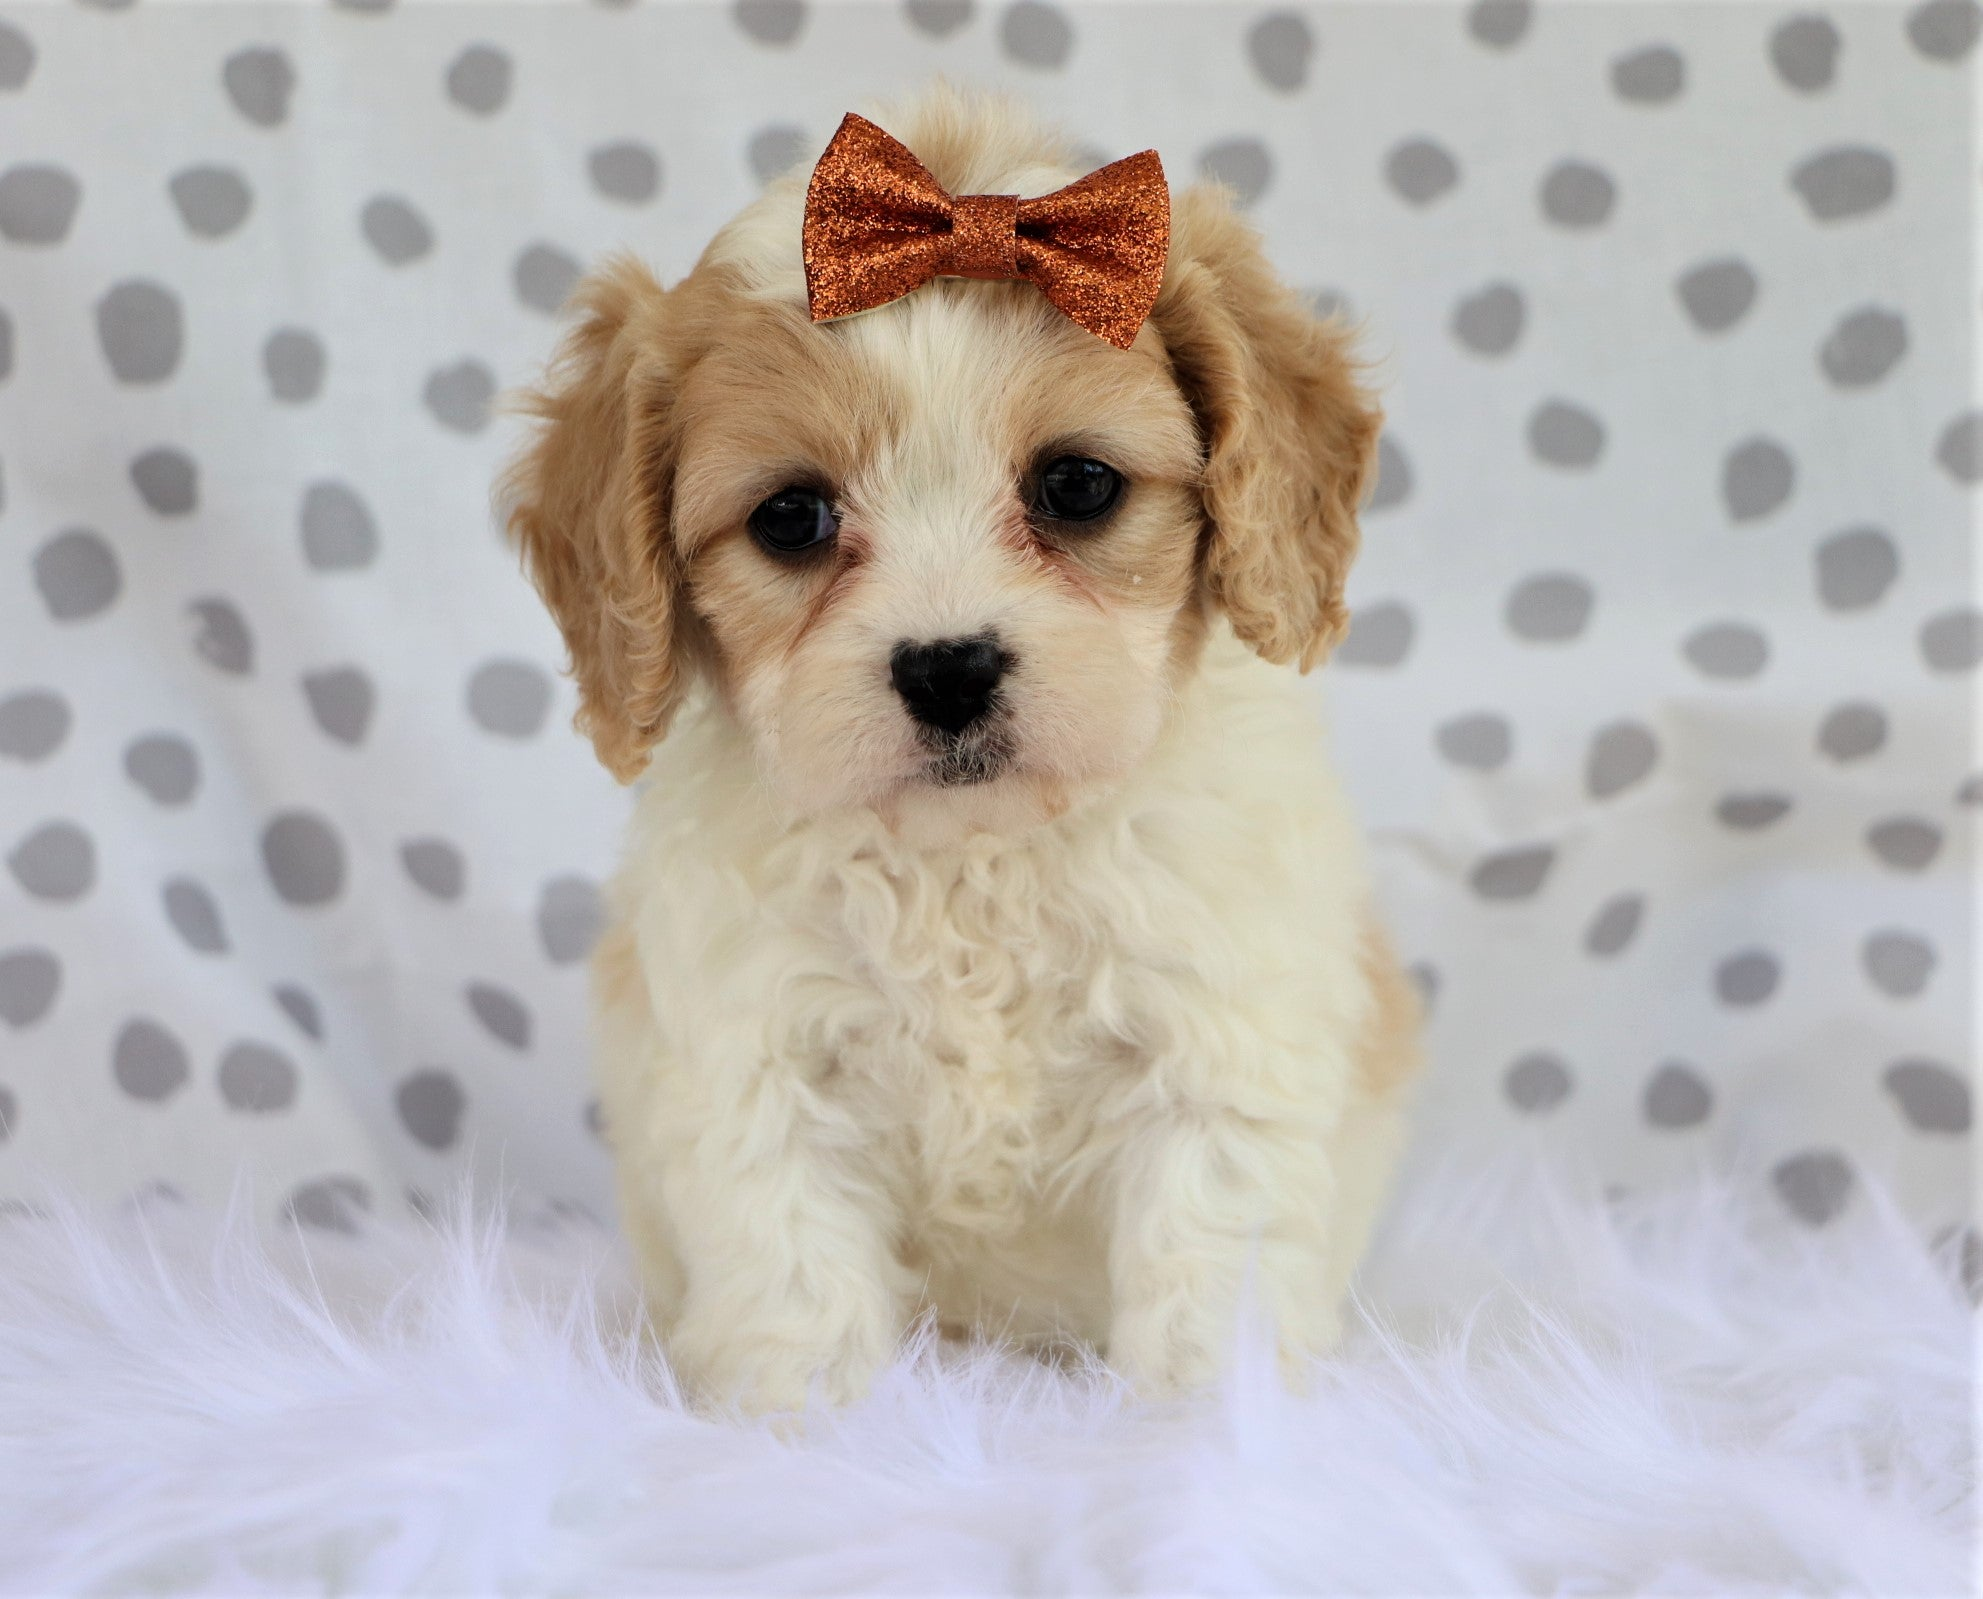 Jennifer Female Cavachon puppy*